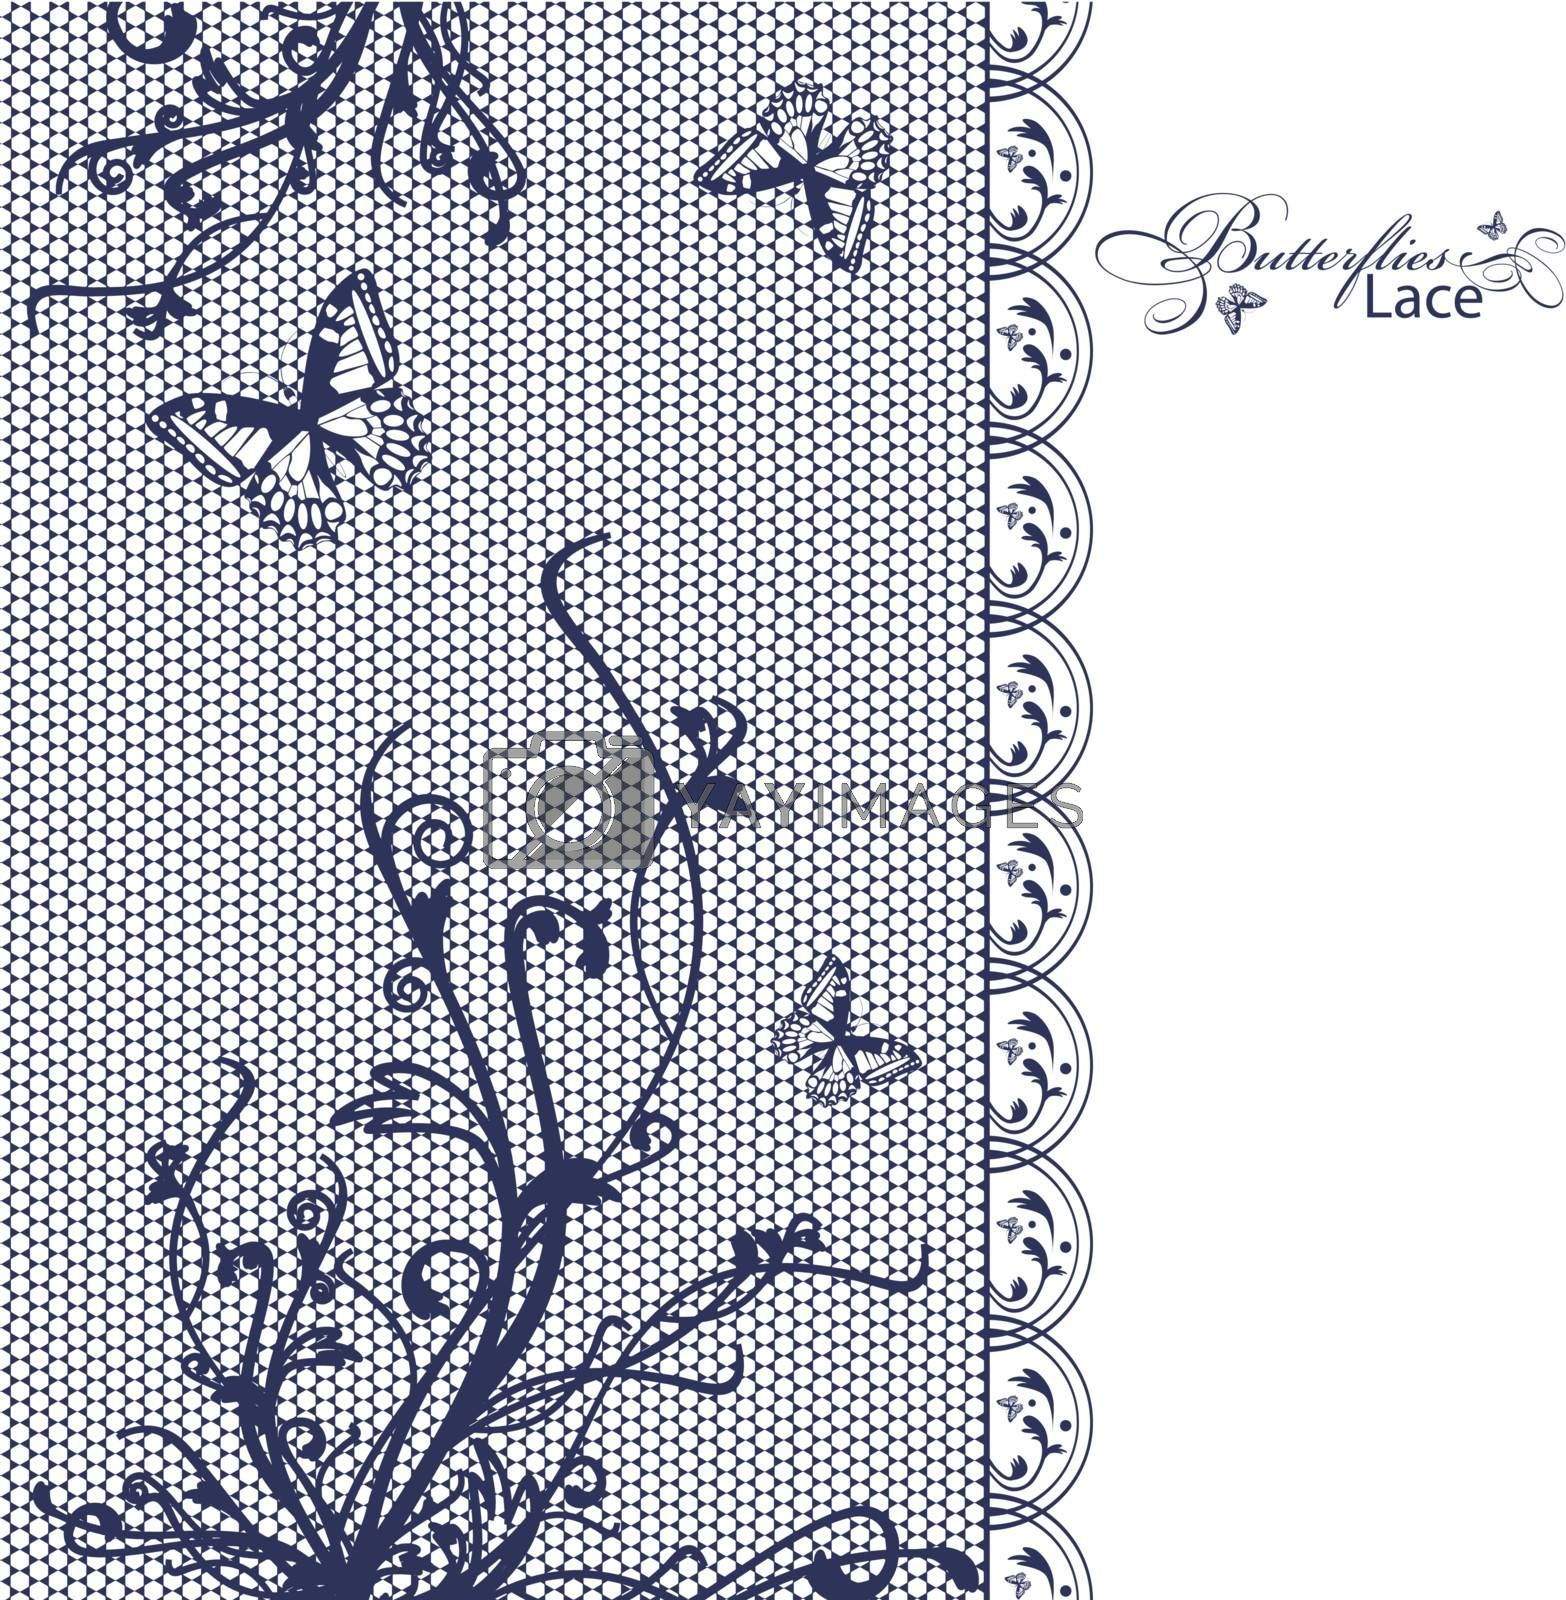 lace butterflies floral frame, copy space for your text